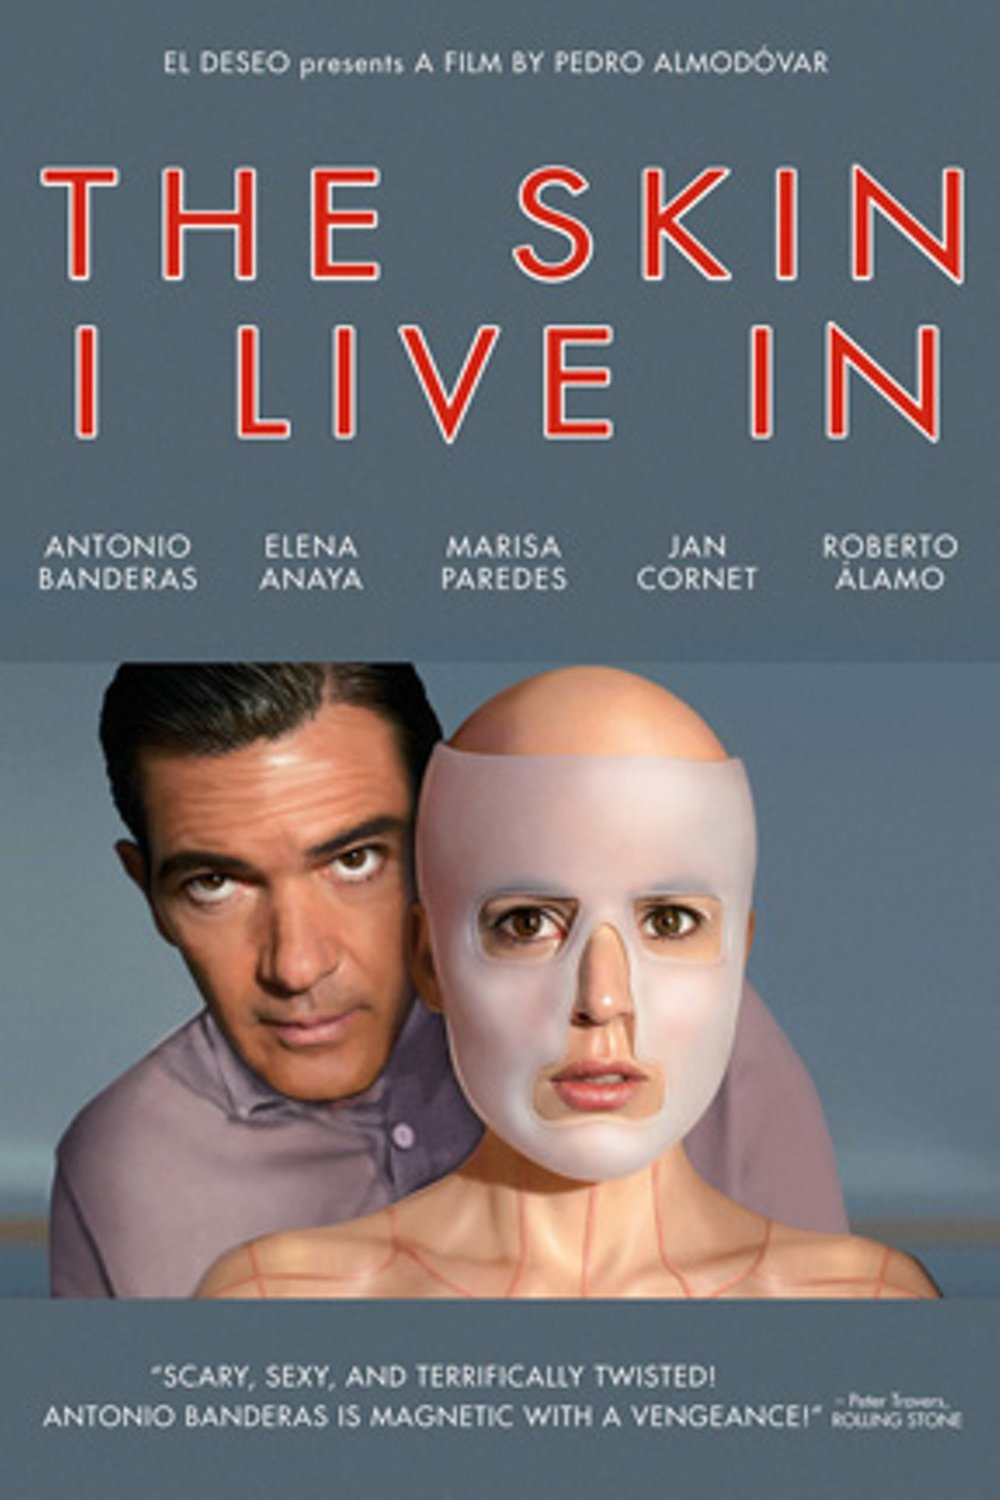 The Skin I Live In (2011) - Directed by: Pedro AlmodovarStarring: Antonio Banderas, Elana Anaya, Jan Cornet, Marisa ParedesRated: R for Disturbing Violent Content Including Sexual Assault, Strong Sexuality, Graphic Nudity, Drug Use and Language.Running Time: 2 hTMM Score: 3.5 stars out of 5STRENGTHS: Direction, Story Structure, Some ActingWEAKNESSES: Fails to Really Make A Connection, Rough Themes